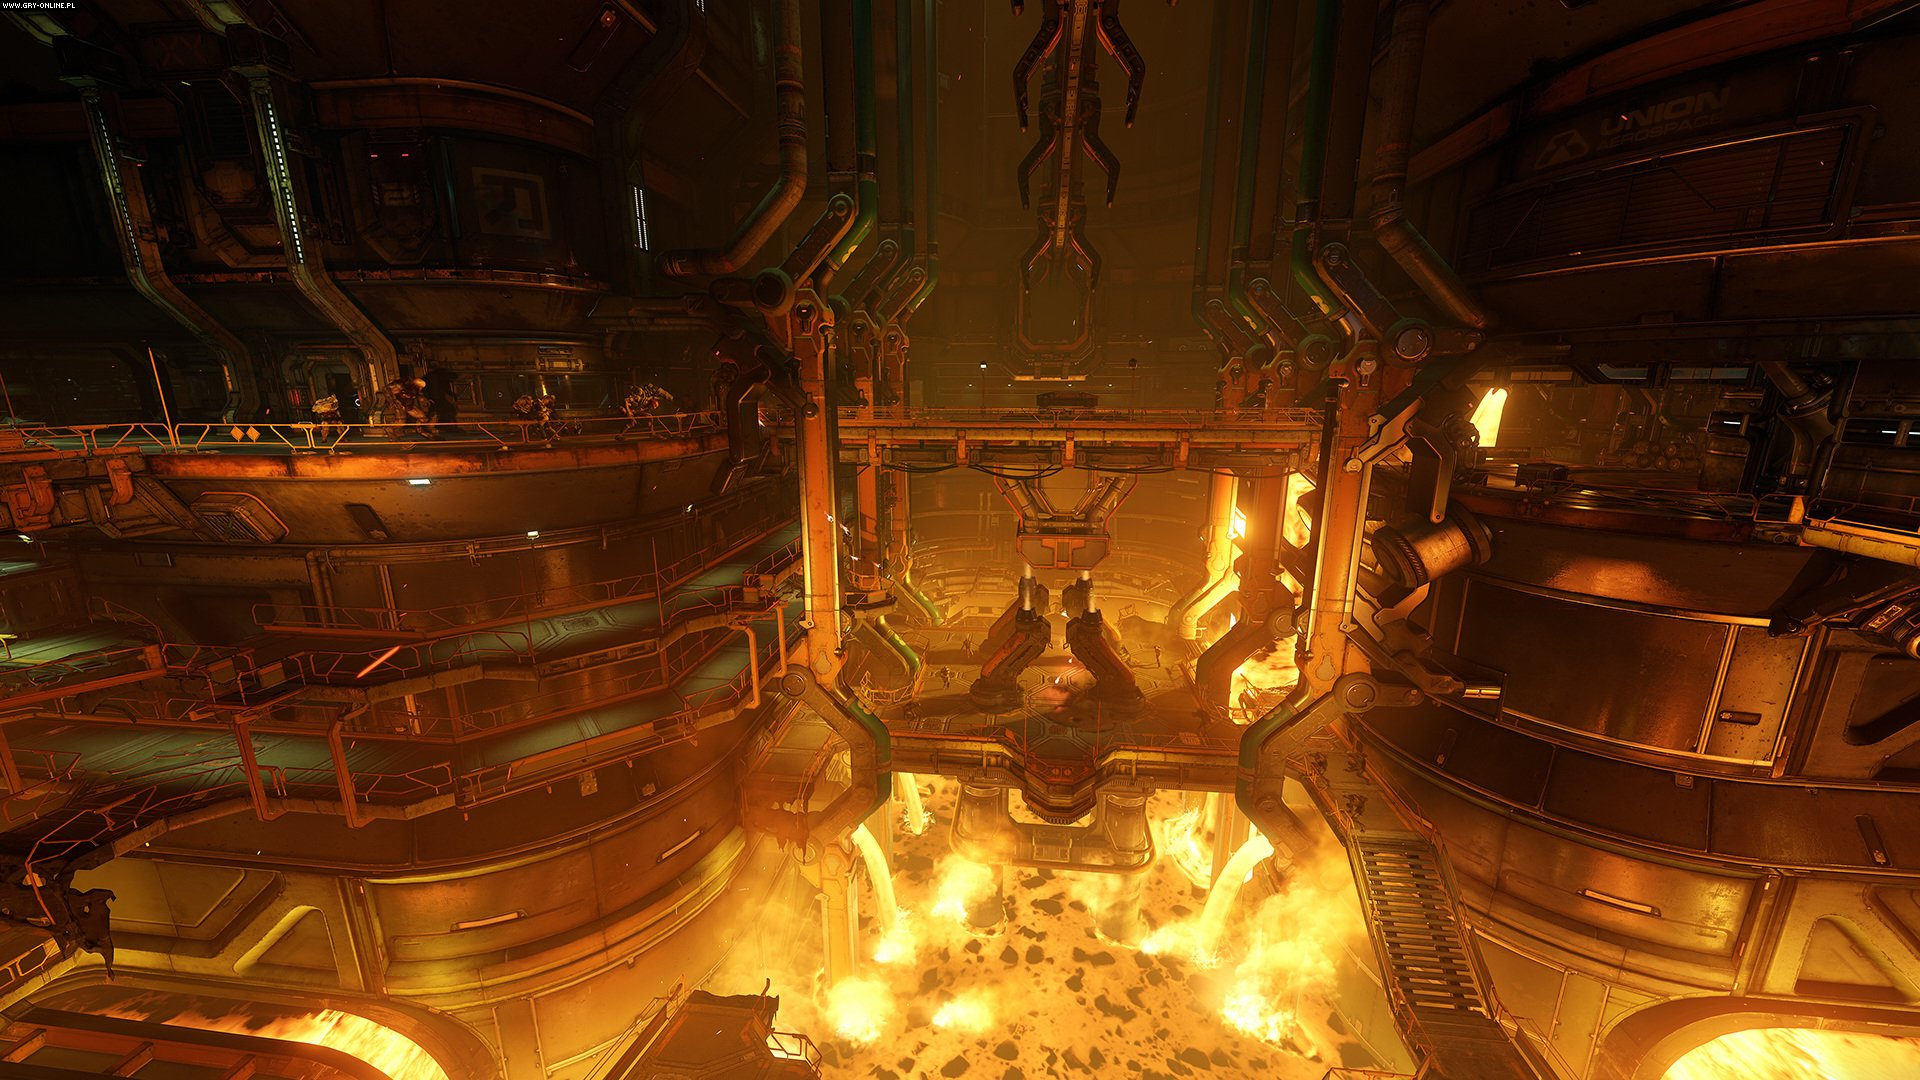 Doom PC, PS4, XONE Games Image 20/48, id Software, Bethesda Softworks